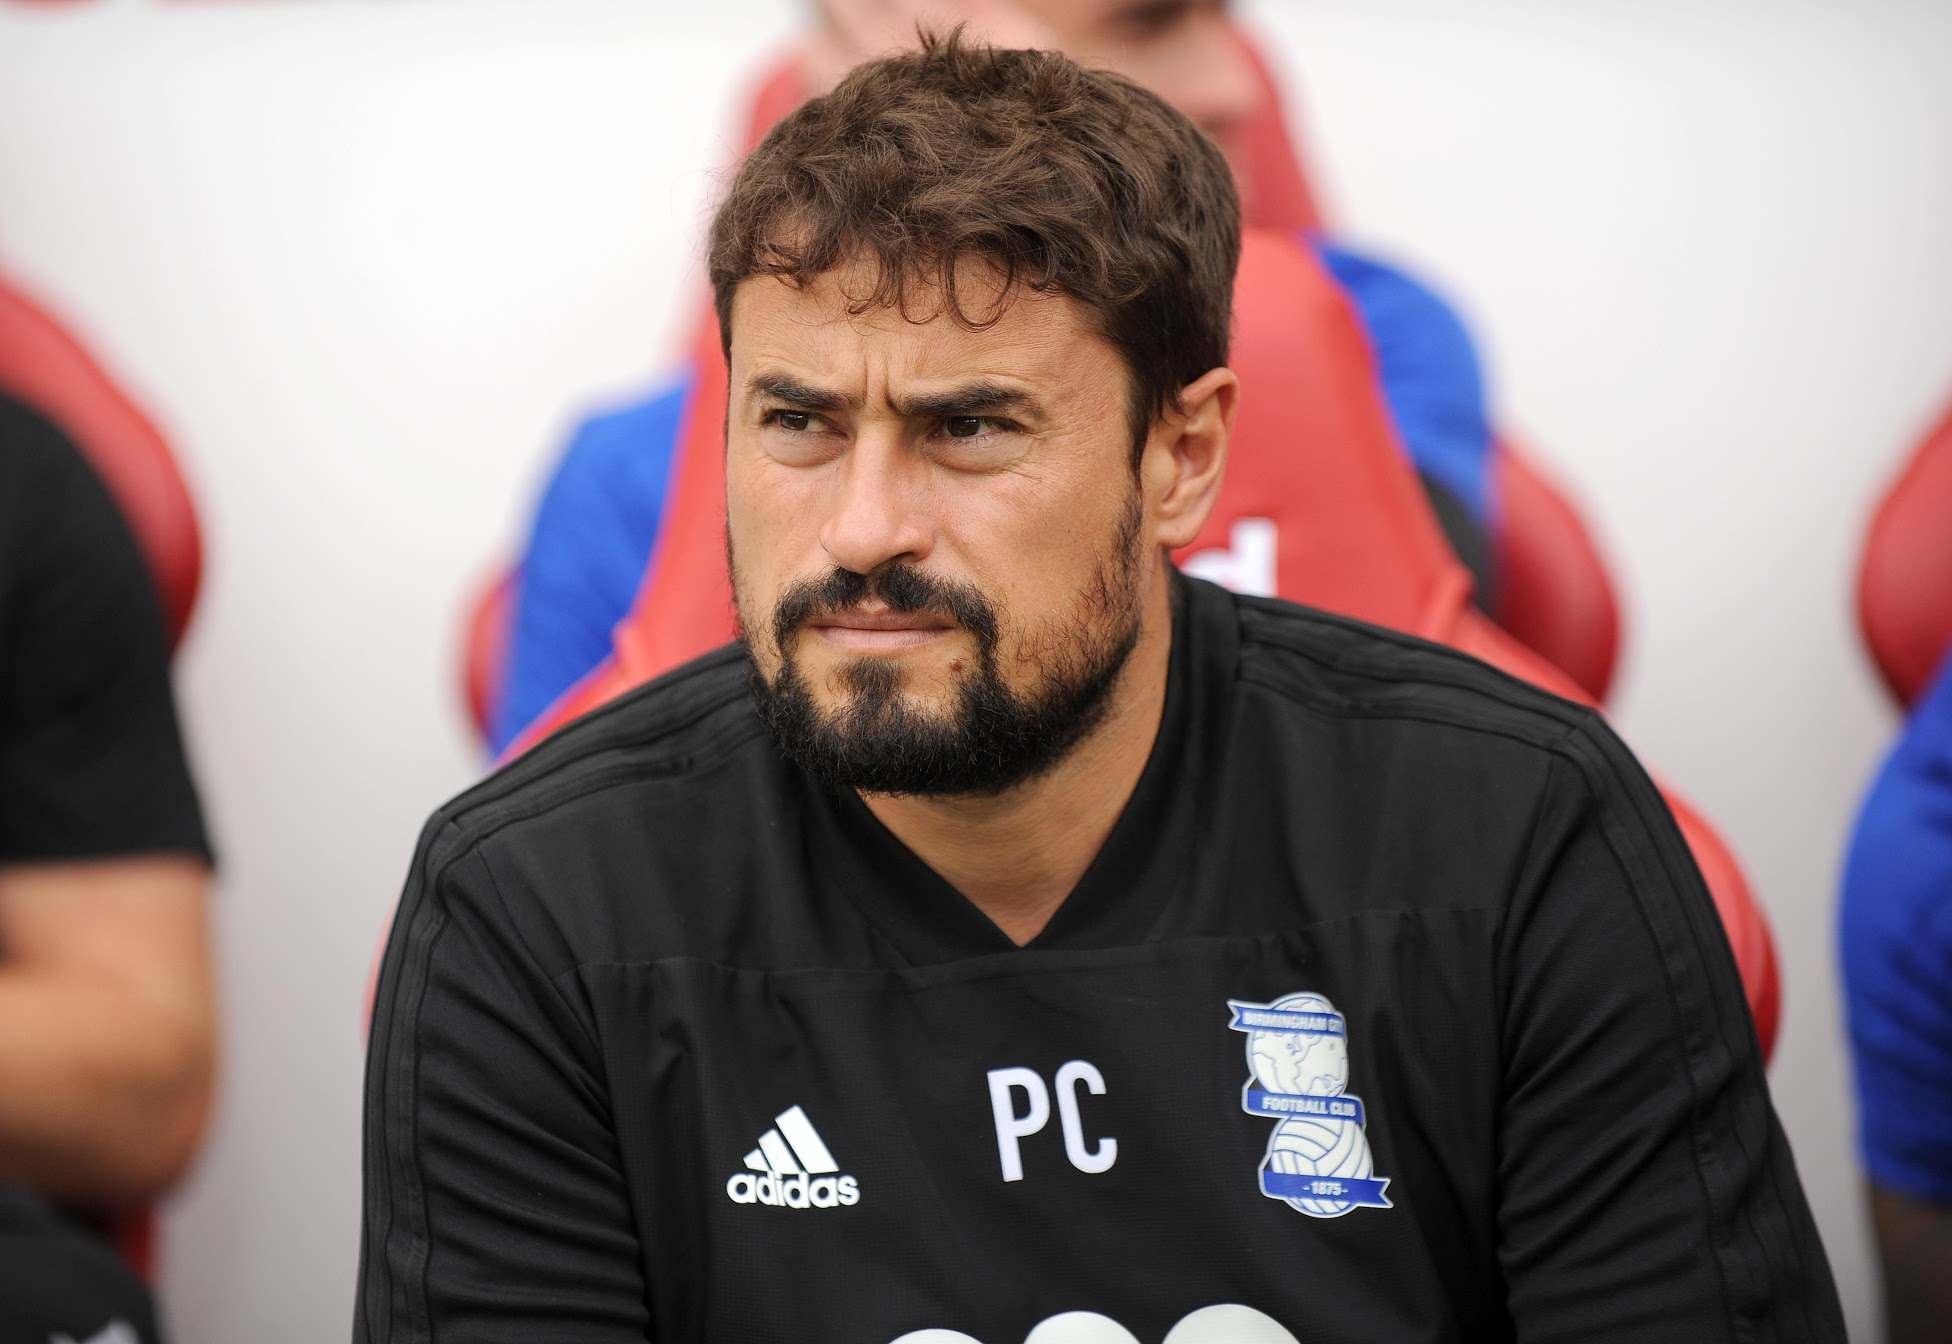 Pep Clotet tells Sky Sports what we can expect from Spain under Luis Enrique